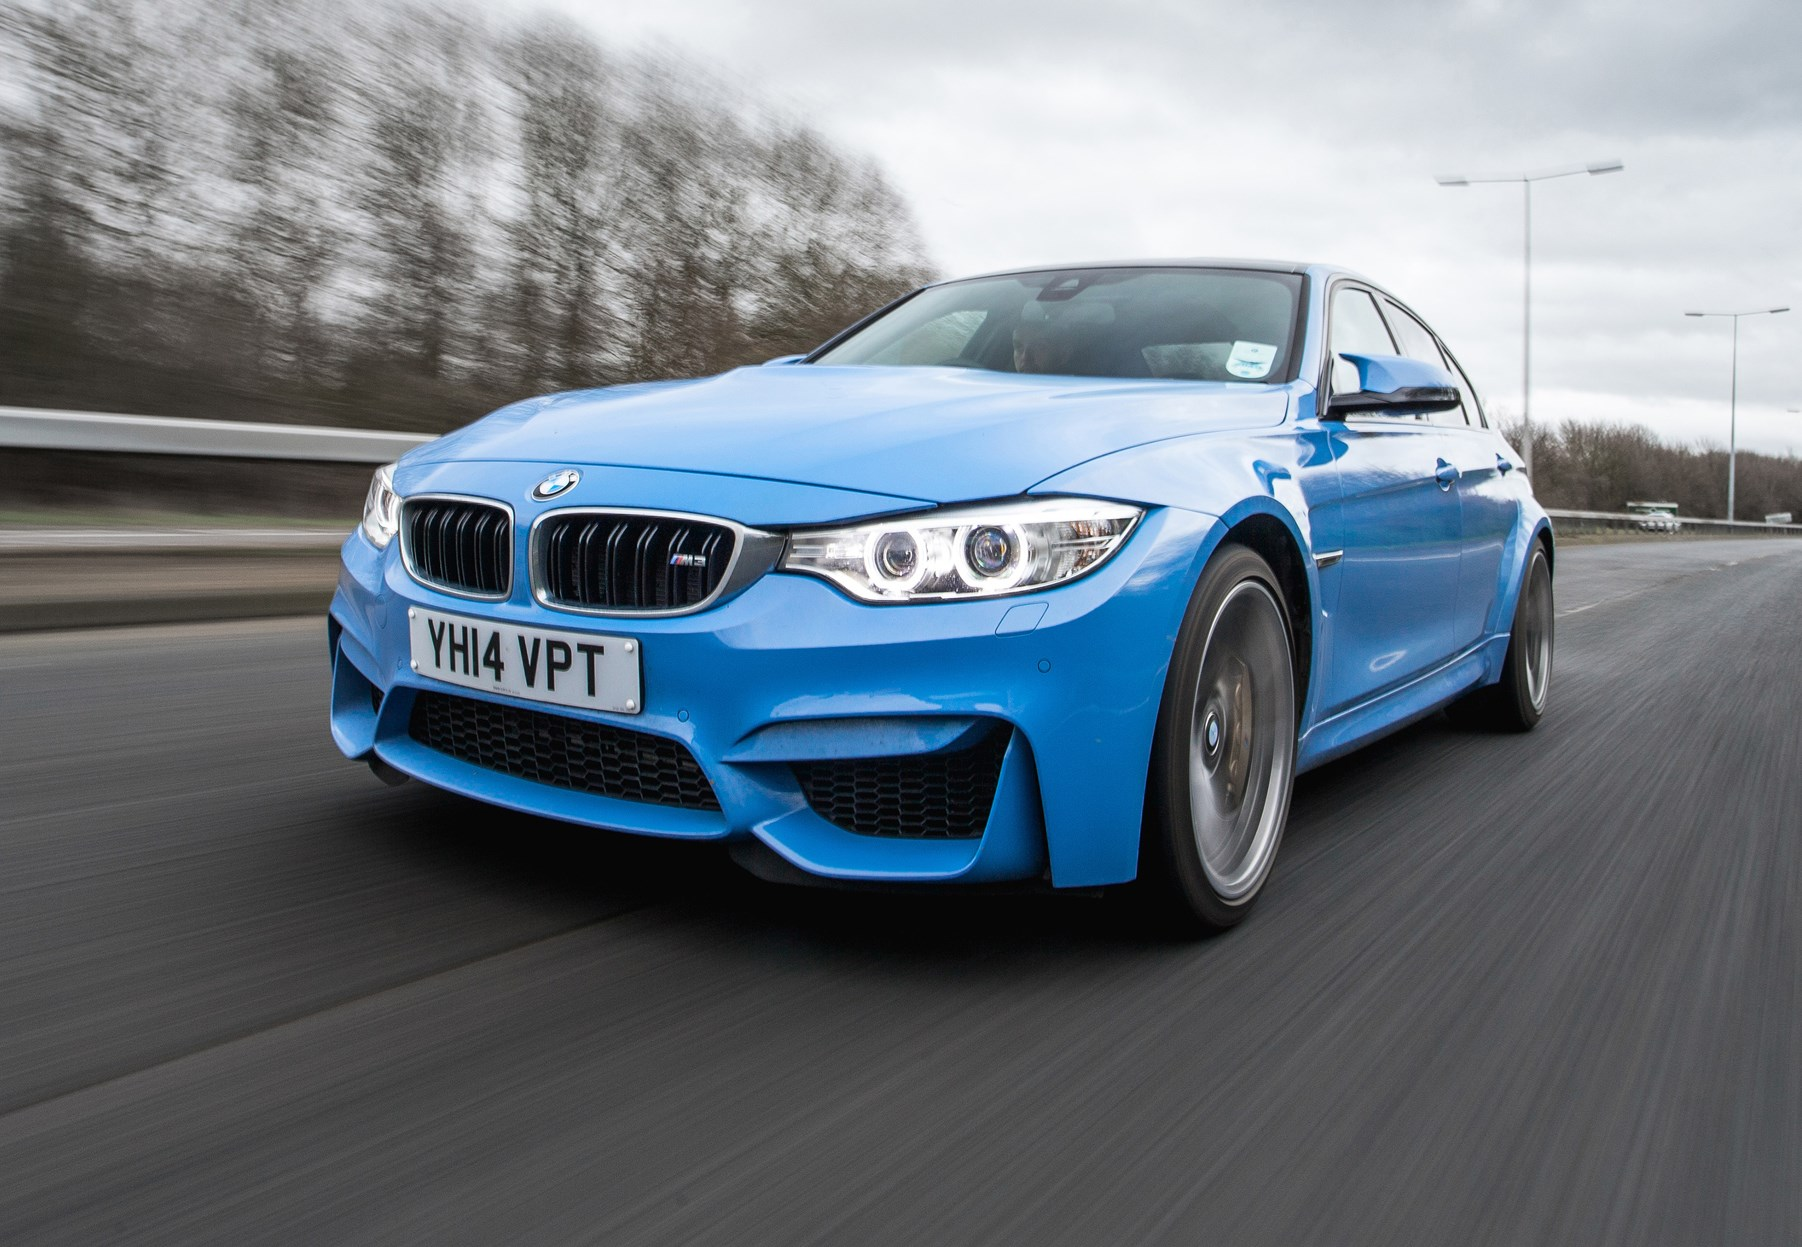 BMW M3 (2015) Long-term Test Review